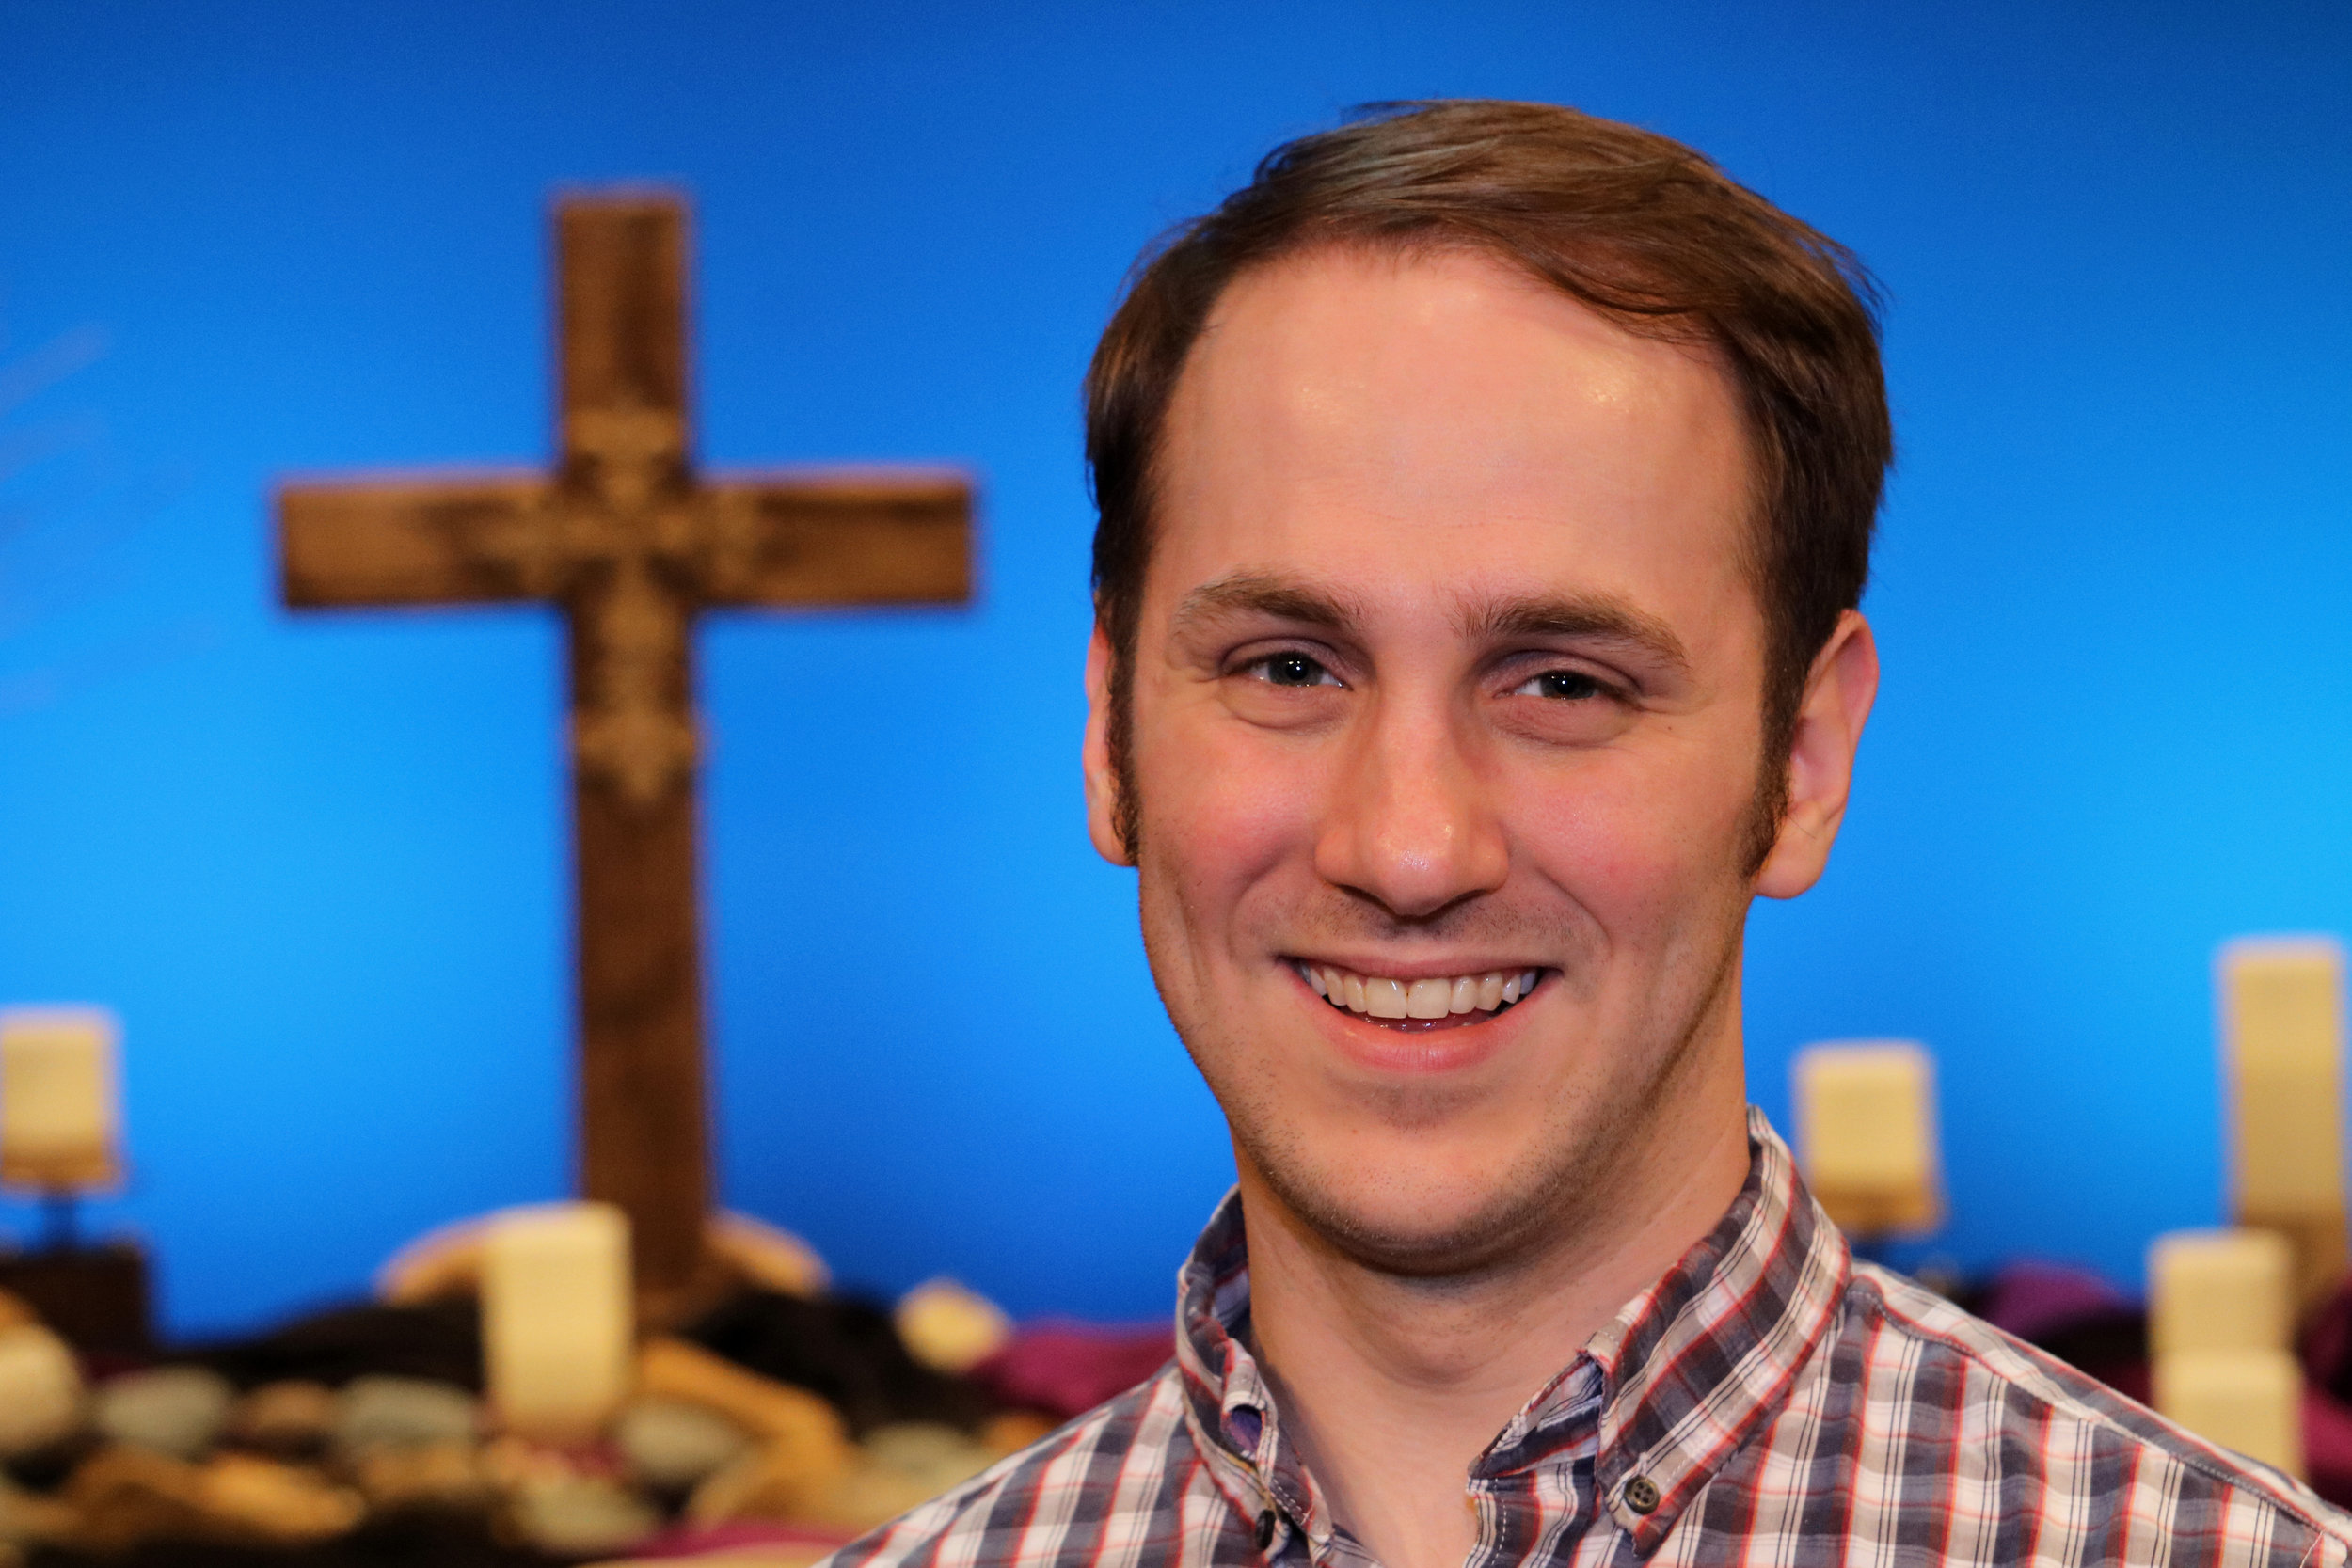 CLICK HERE TO LEARN MORE ABOUT PASTOR BEN